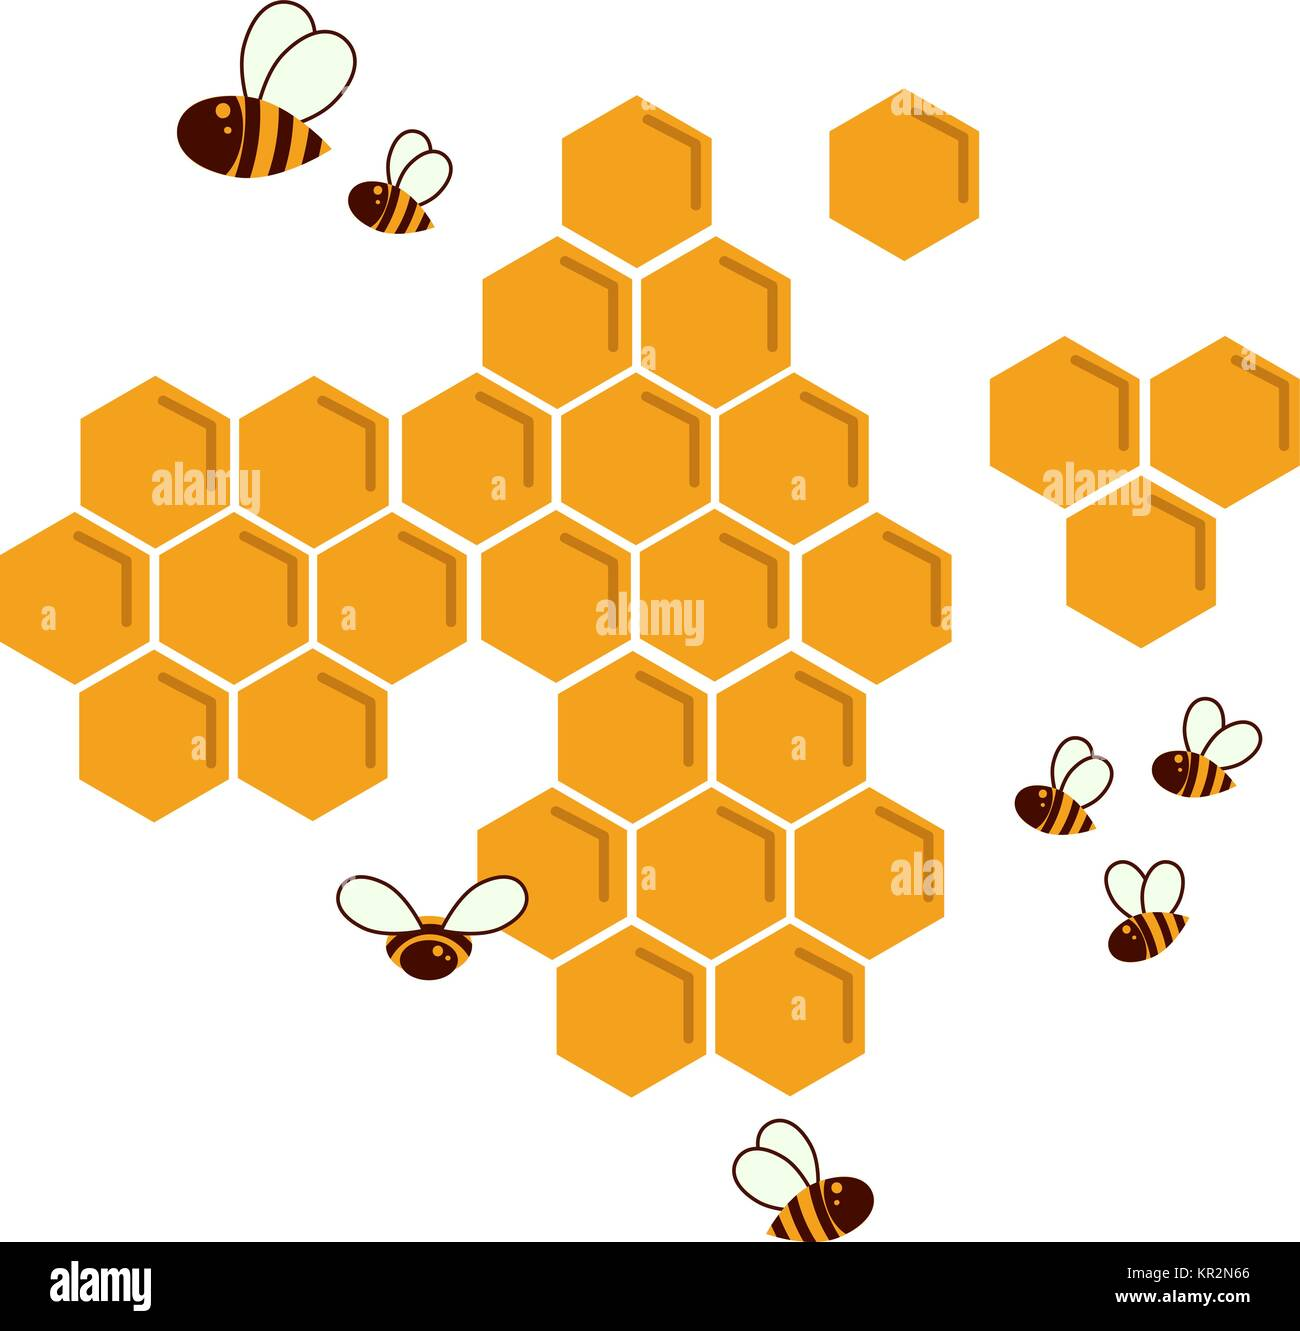 Icon Bee Honeycomb Hexagon Natural Honey Struct Vector Illustration Insects And For Infographics Or Web